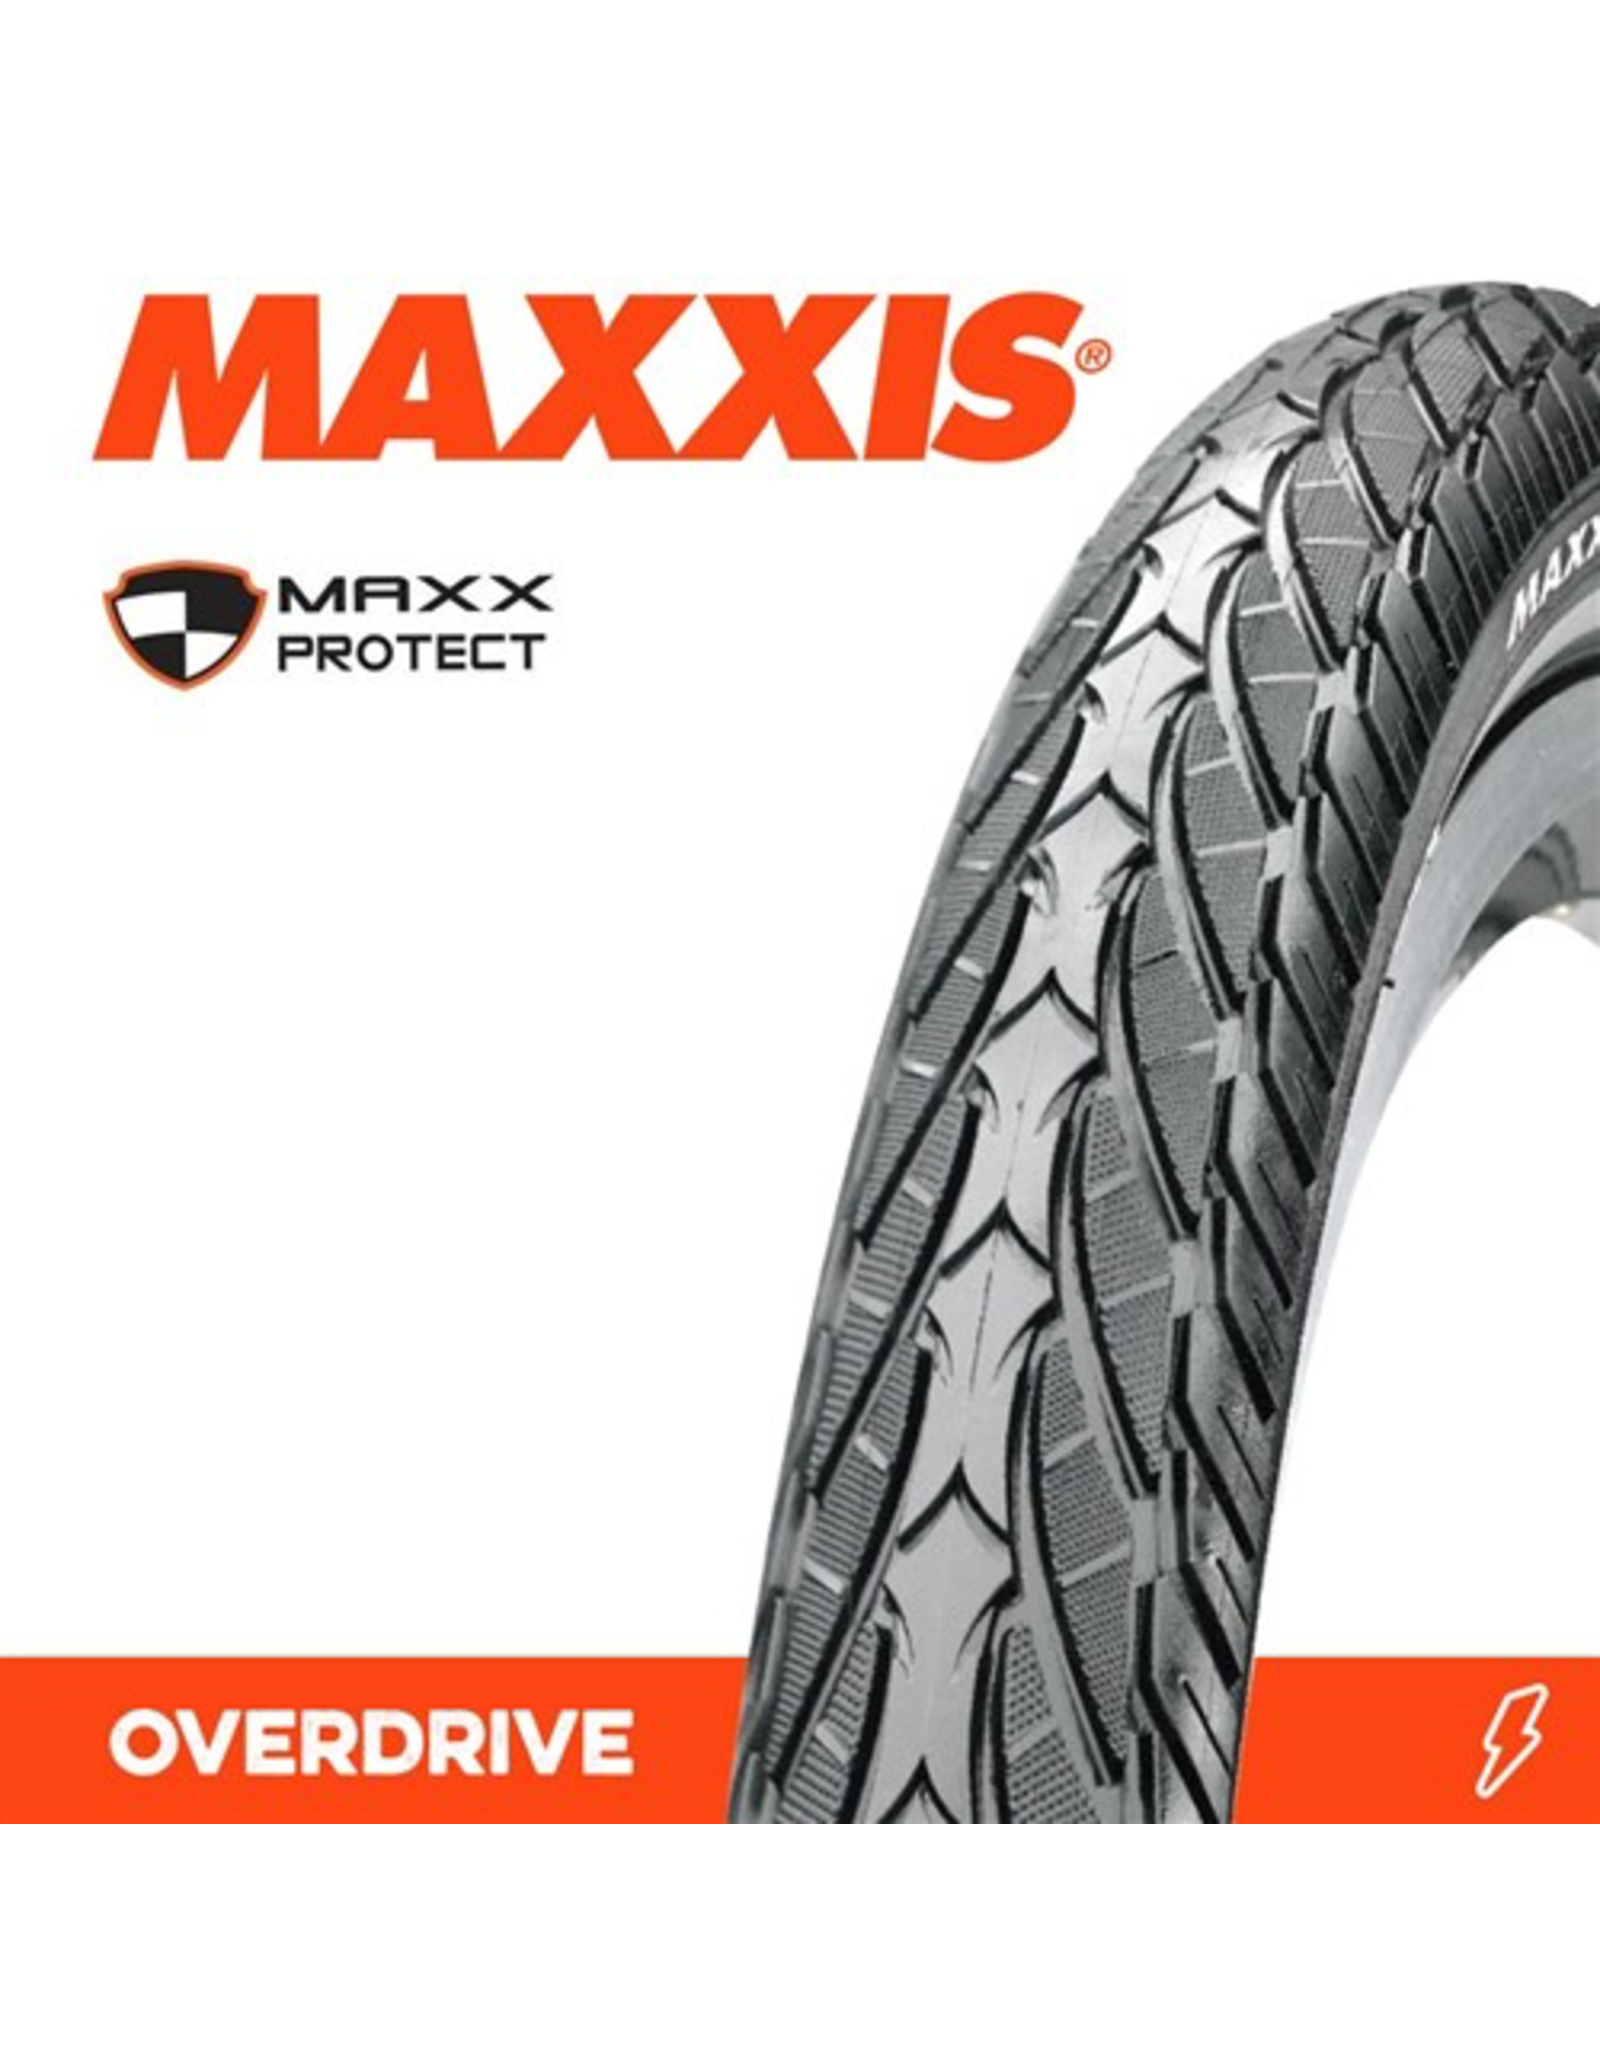 MAXXIS MAXXIS OVERDRIVE 26 X 1.75 MAXX PROTECT WIRE 27 TPI TYRE